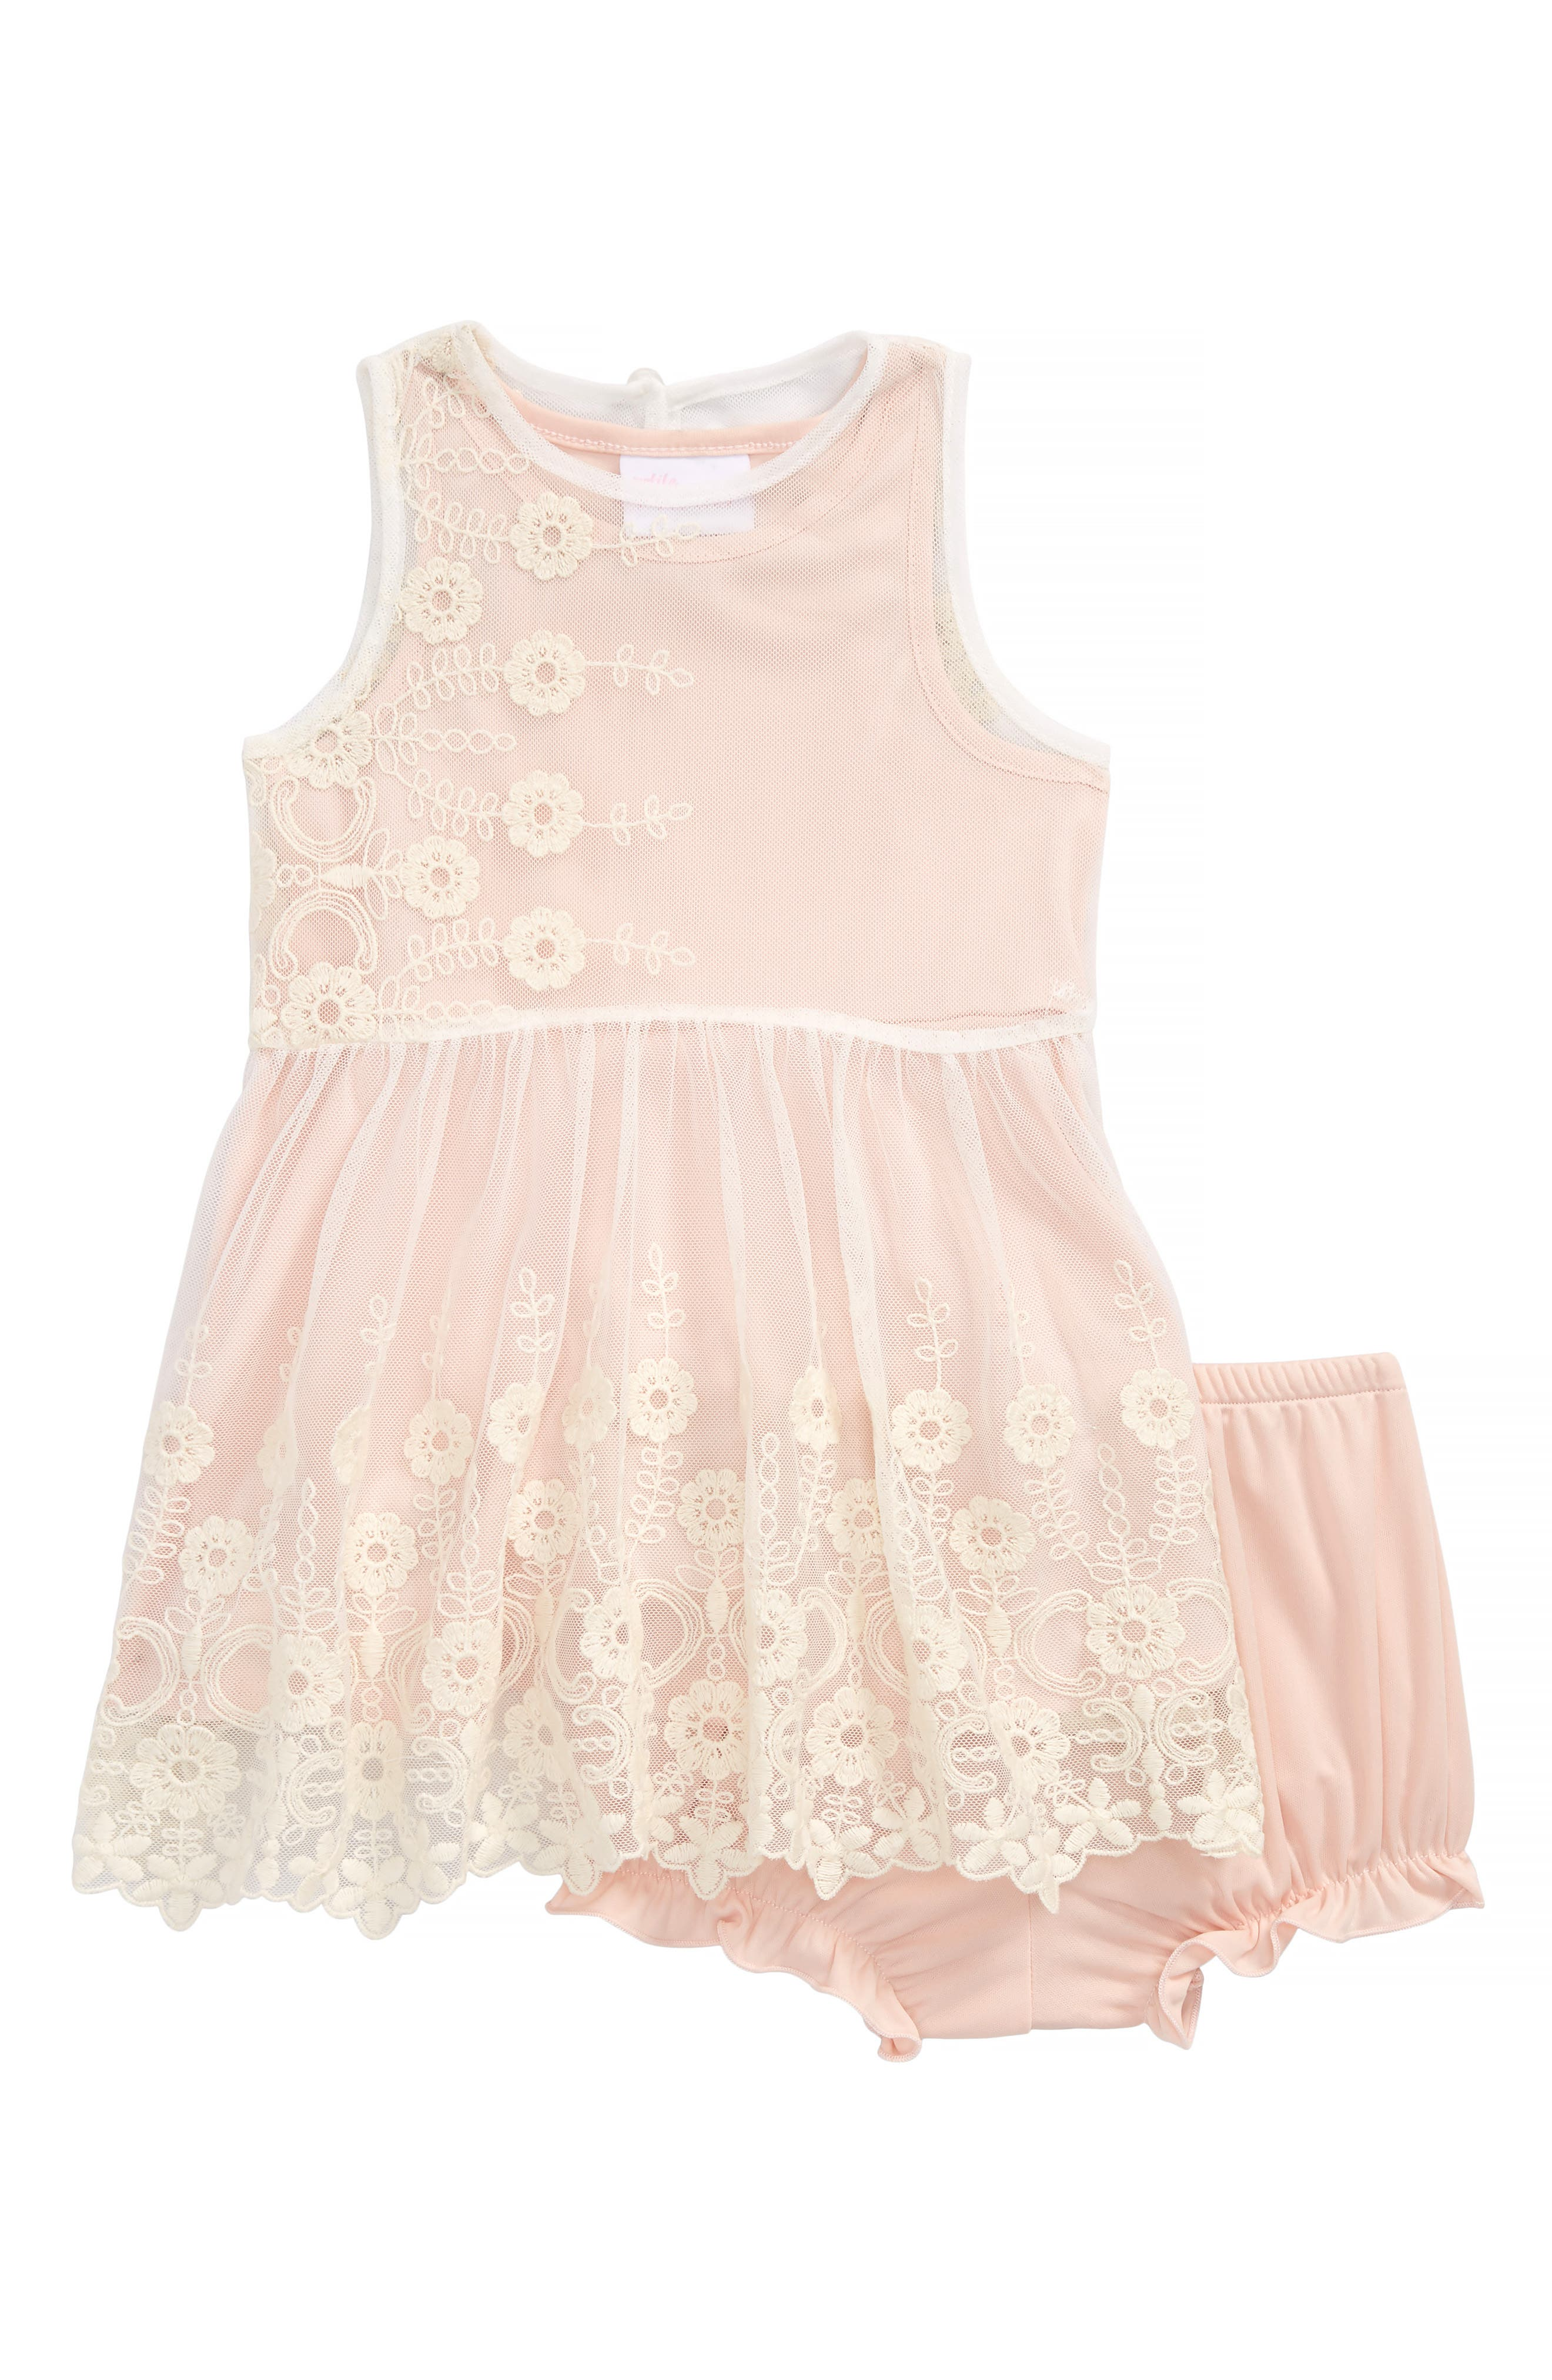 Flower Embroidered Sleeveless Dress,                         Main,                         color, Ivory / Pink